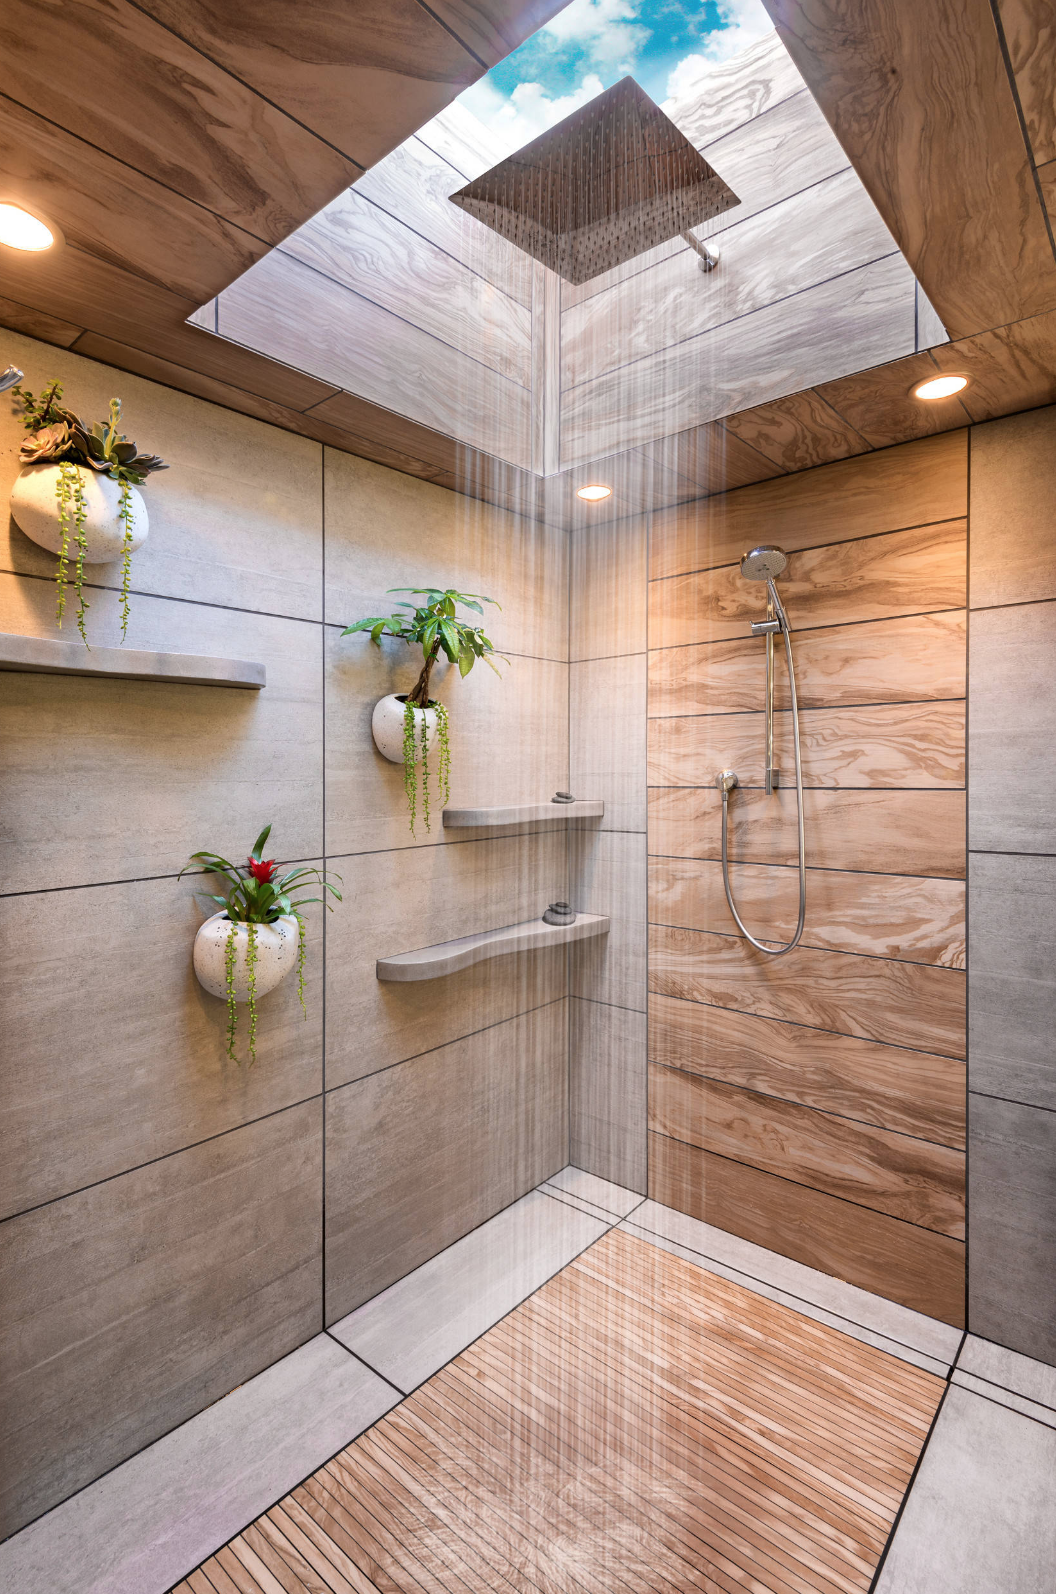 An Inventive Way To Capture Light And Water In The Same E Also Love Large Format Tiles This Bath Remodel Bathroom Remidrling